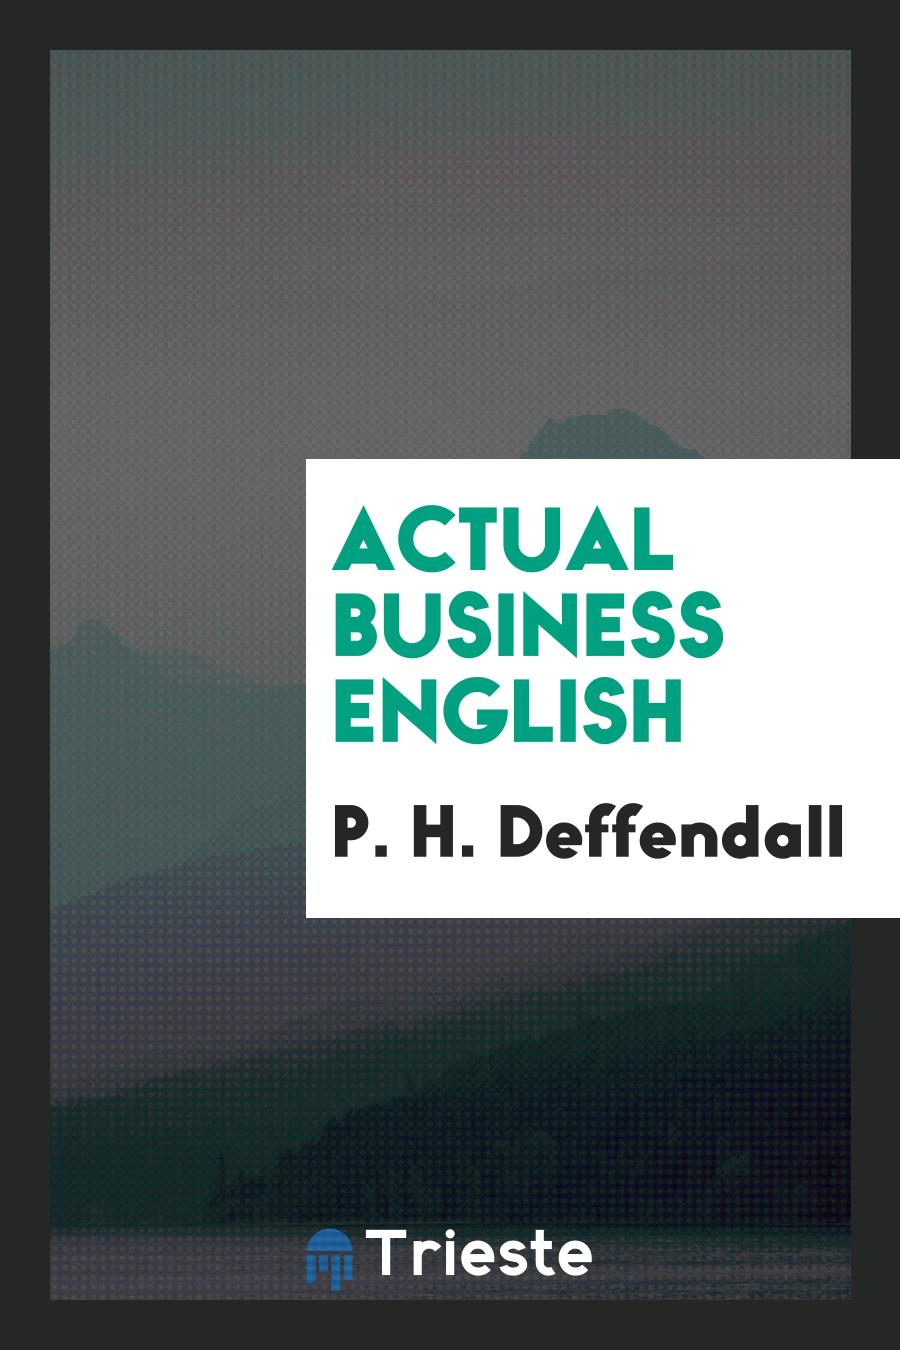 Actual Business English